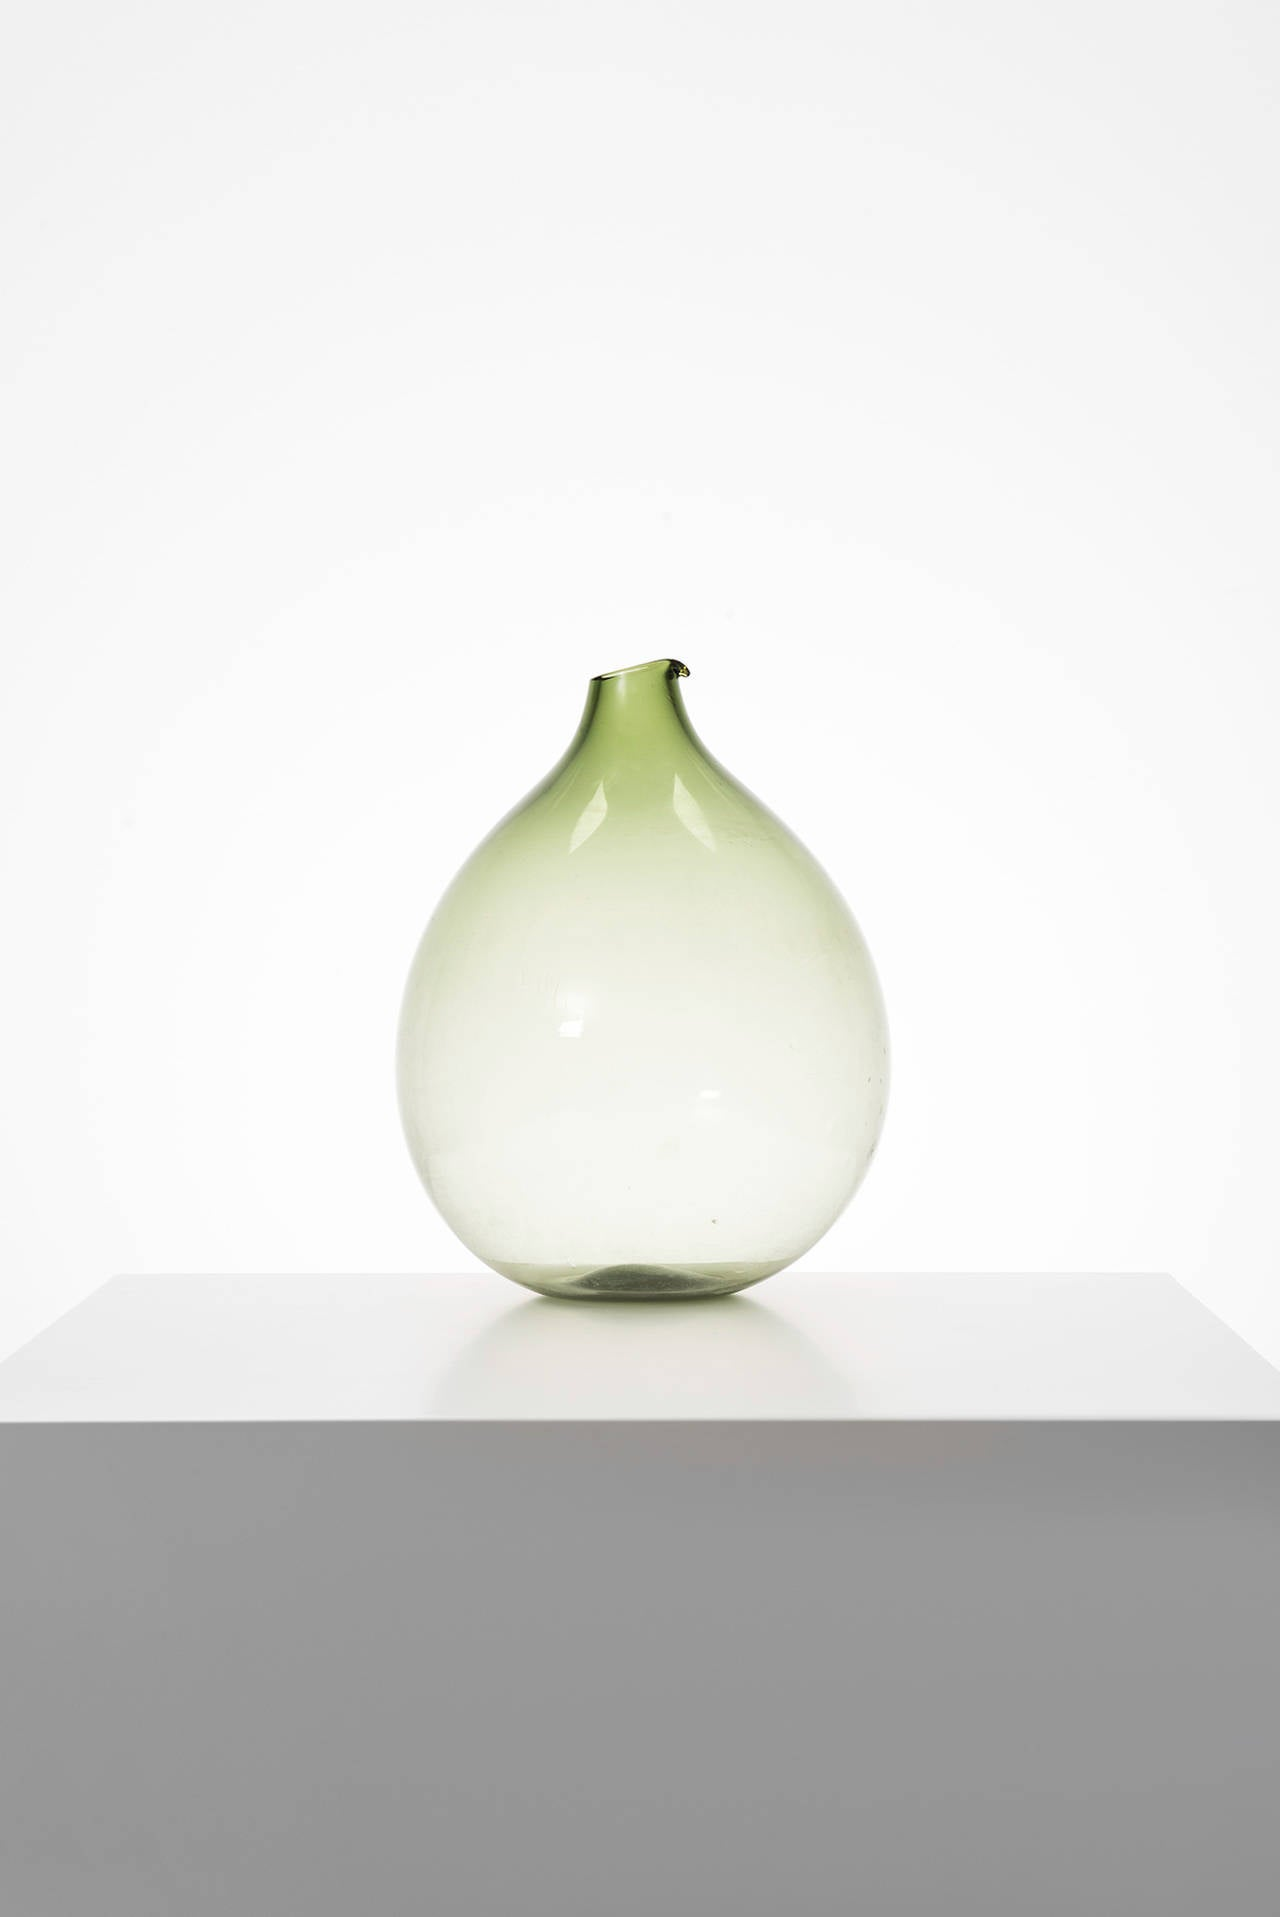 Swedish Kjell Blomberg Glass Vase by Gullaskruf in Sweden